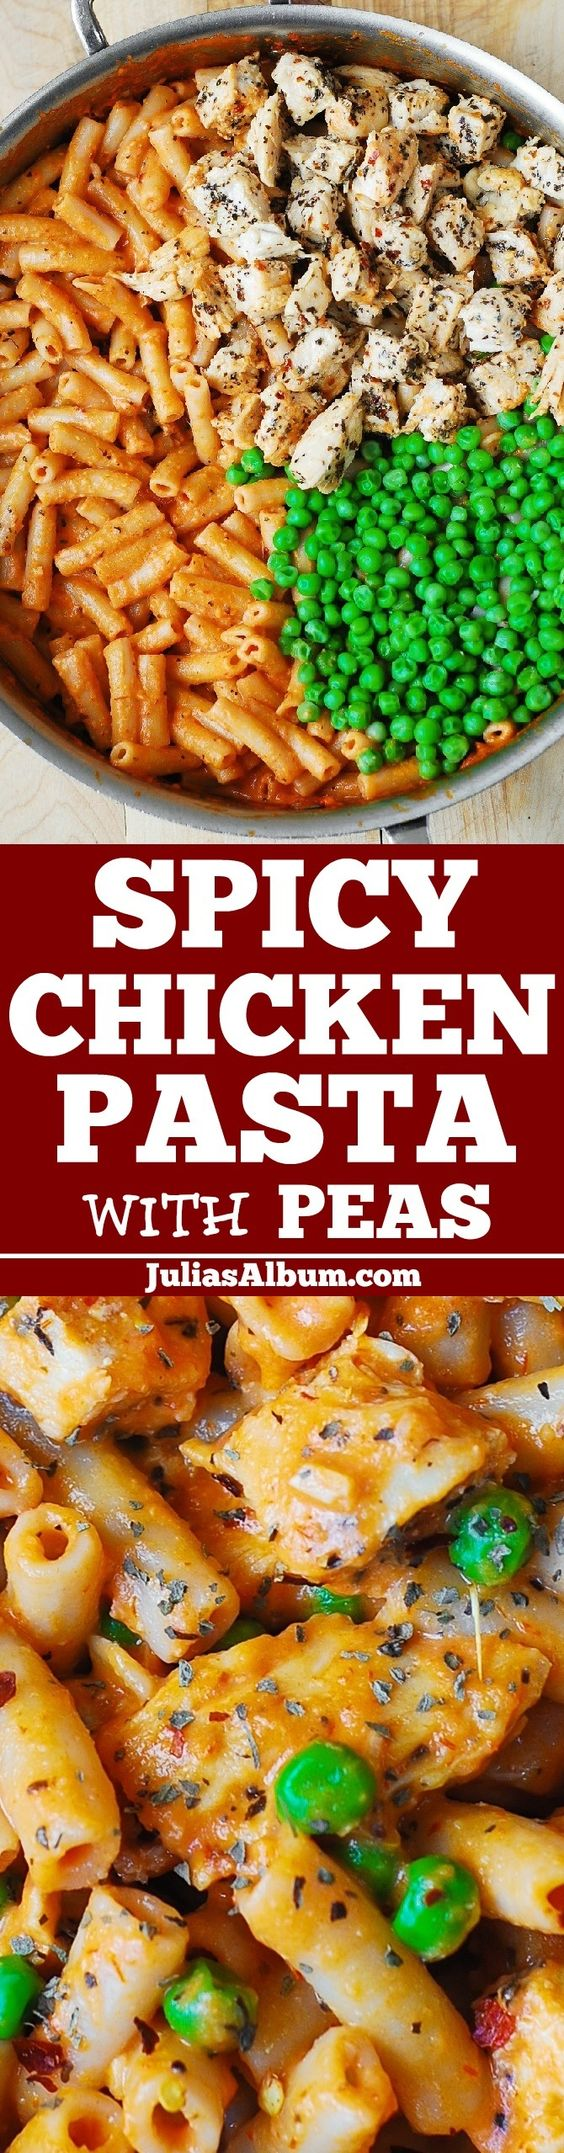 Chicken Pasta with Peas in a spicy and creamy Mozzarella cheese sauce ...